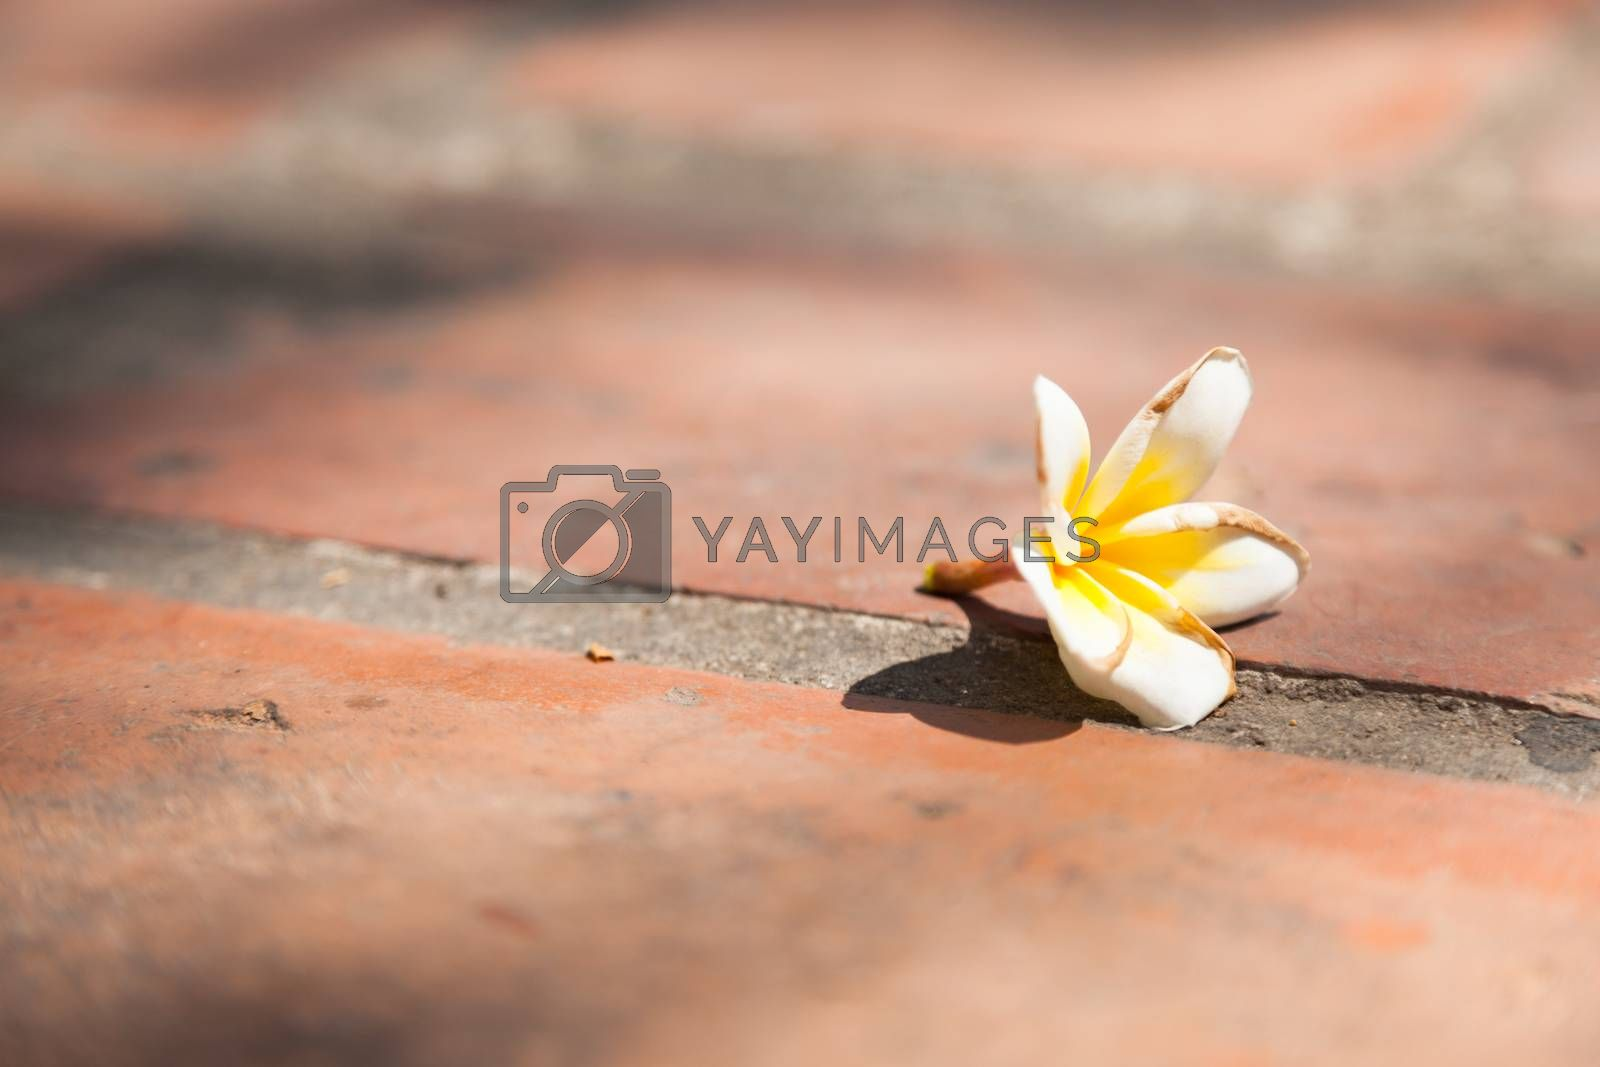 White flower on the ground by a454